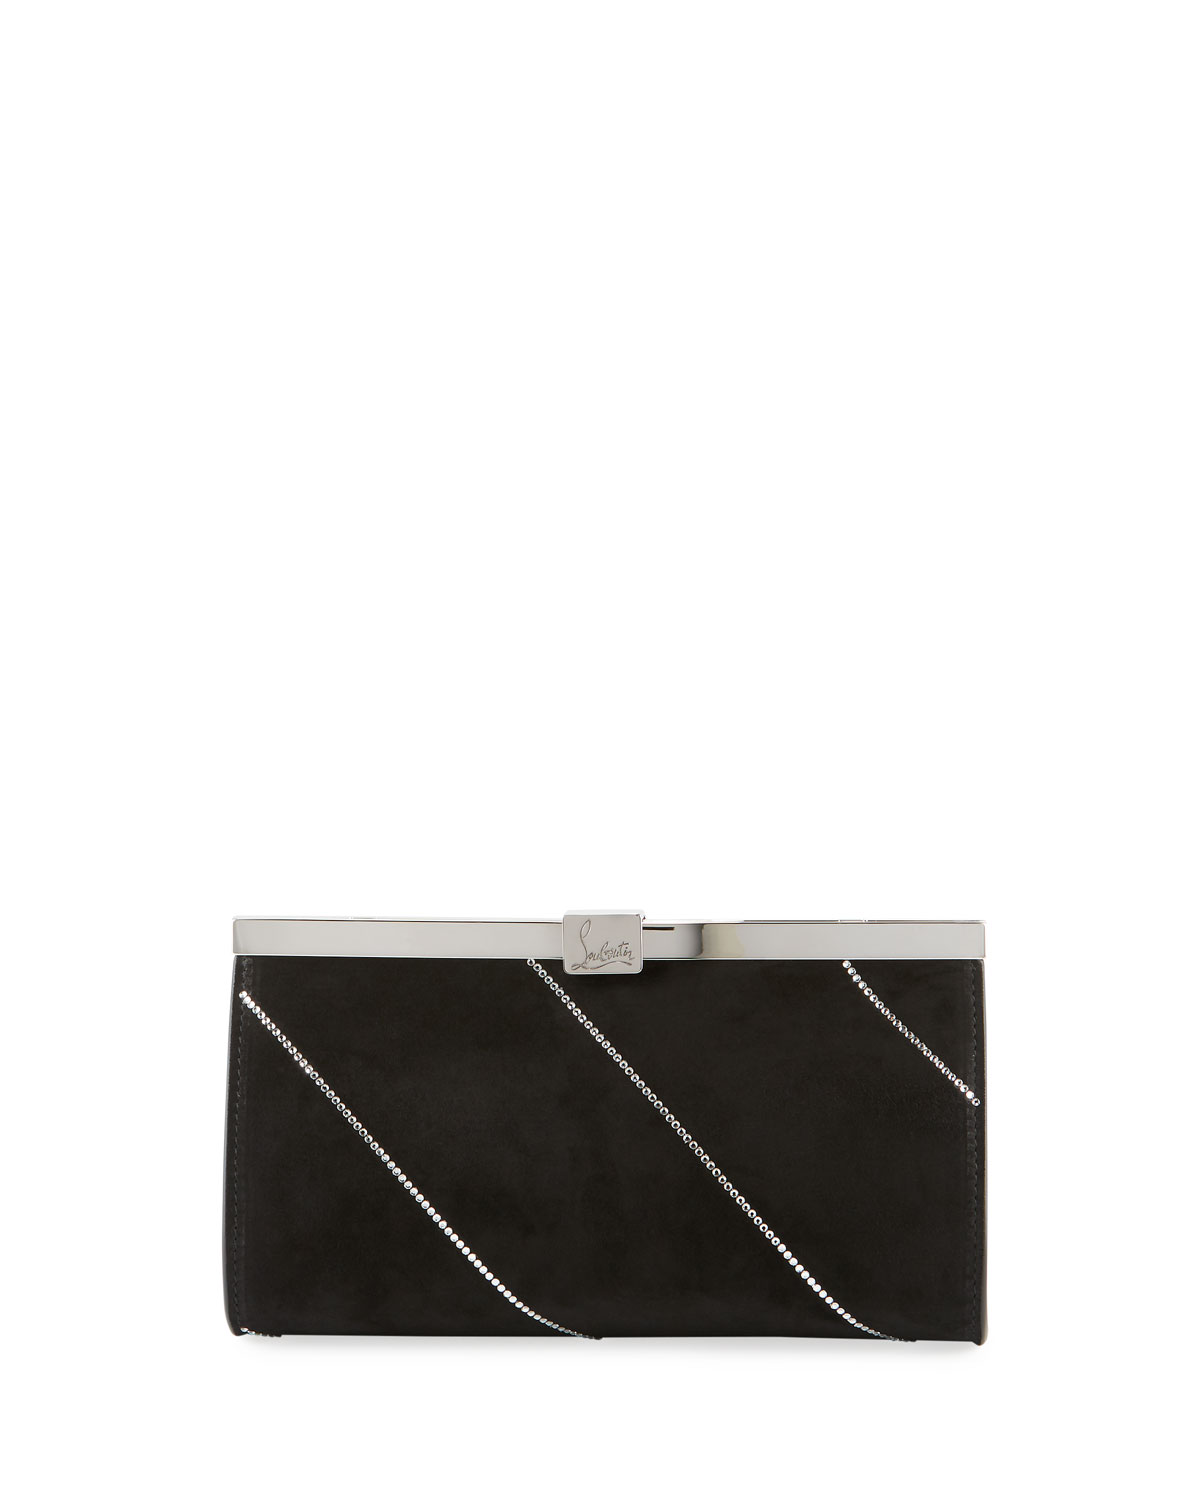 Christian Louboutin Palmette Small Suede Clutch Bag